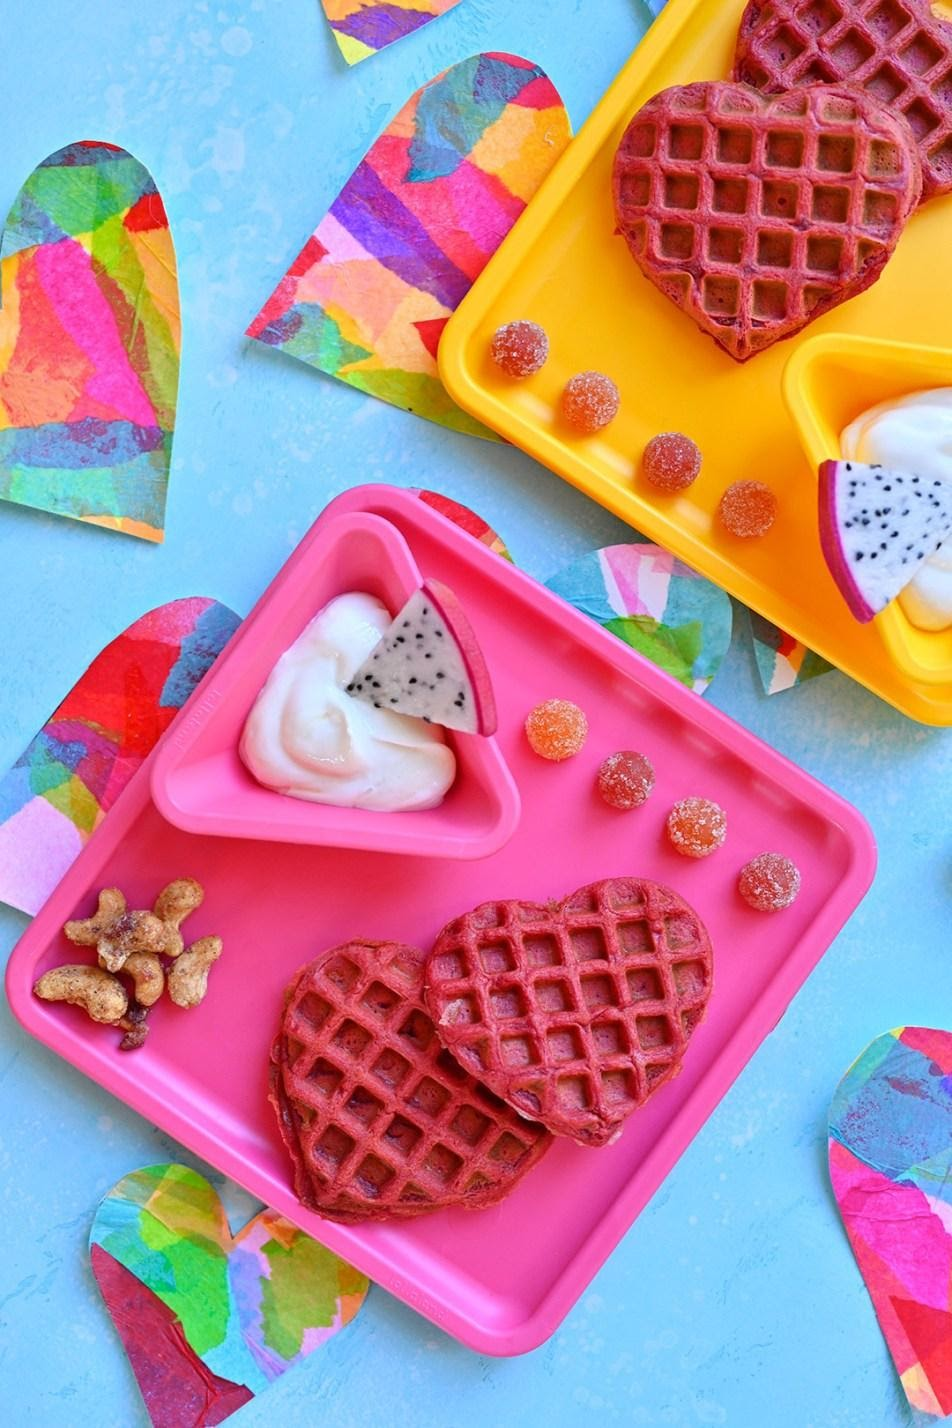 Two kids plates, yellow and pink on blue table surrounded by cut out hearts. The plates have pink heart shaped waffles, kids gummies, yogurt and nuts.